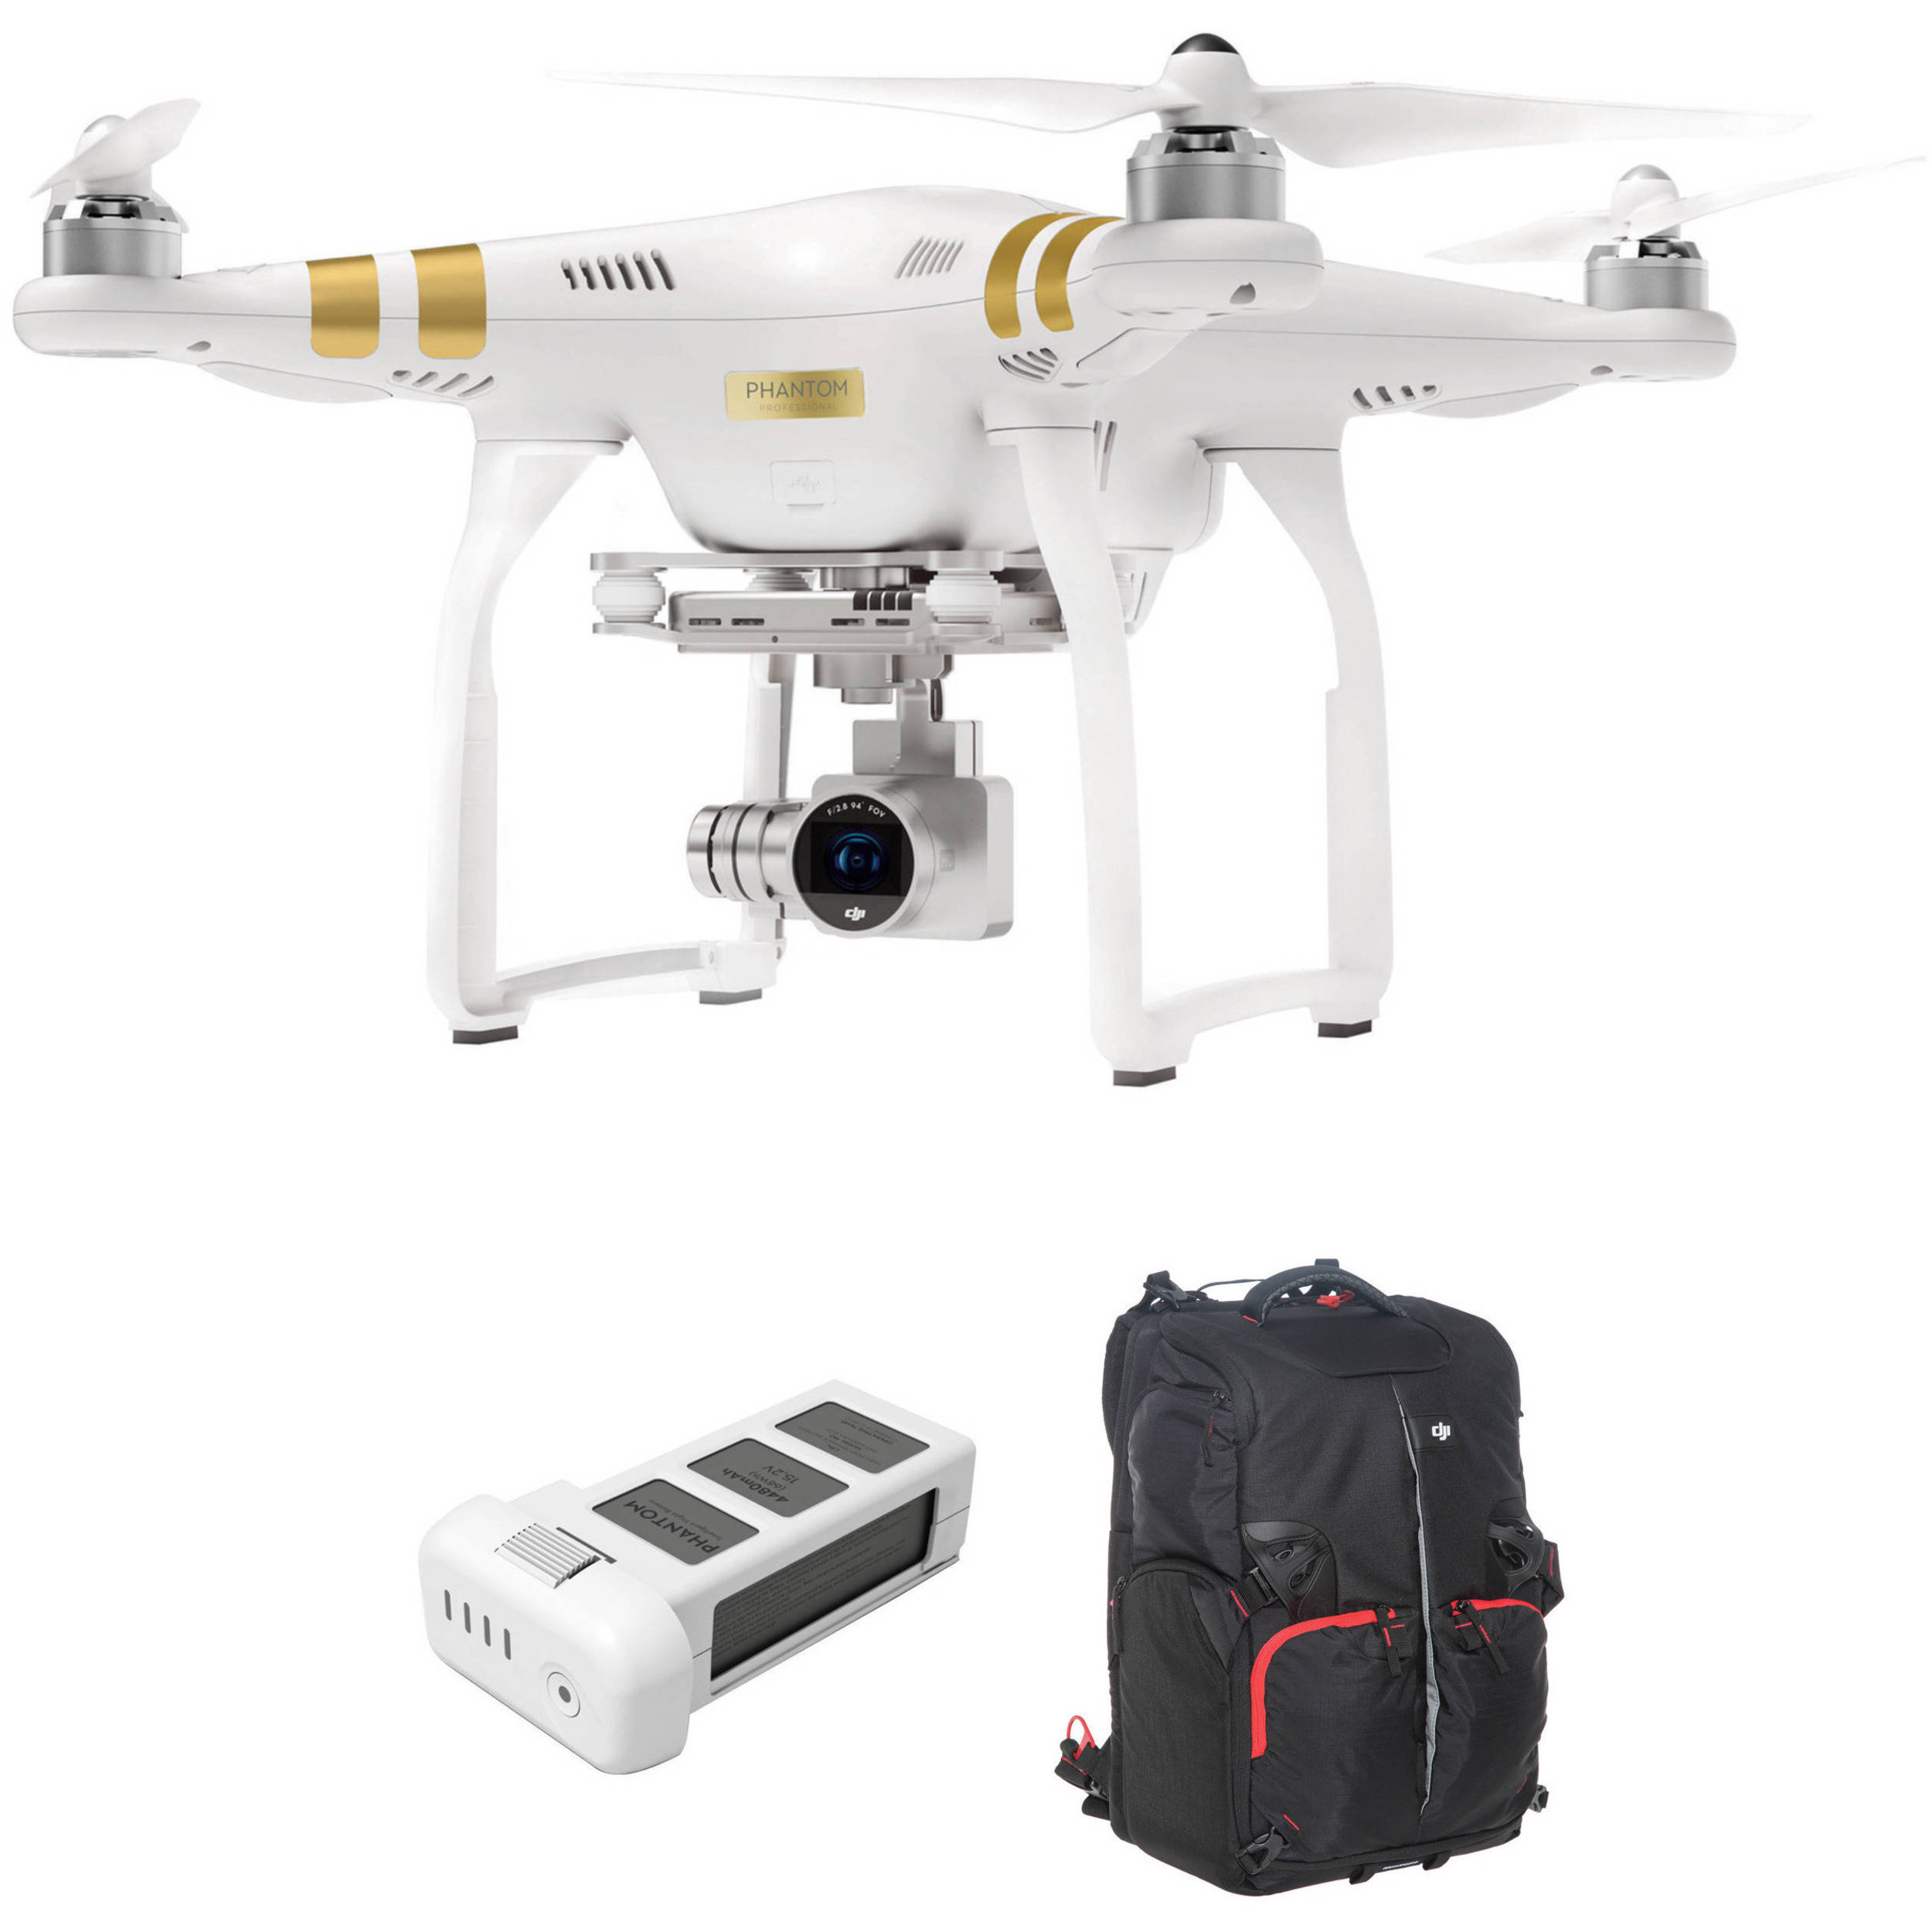 dji phantom 3 professional with 4k camera and battery djip3pwbp. Black Bedroom Furniture Sets. Home Design Ideas